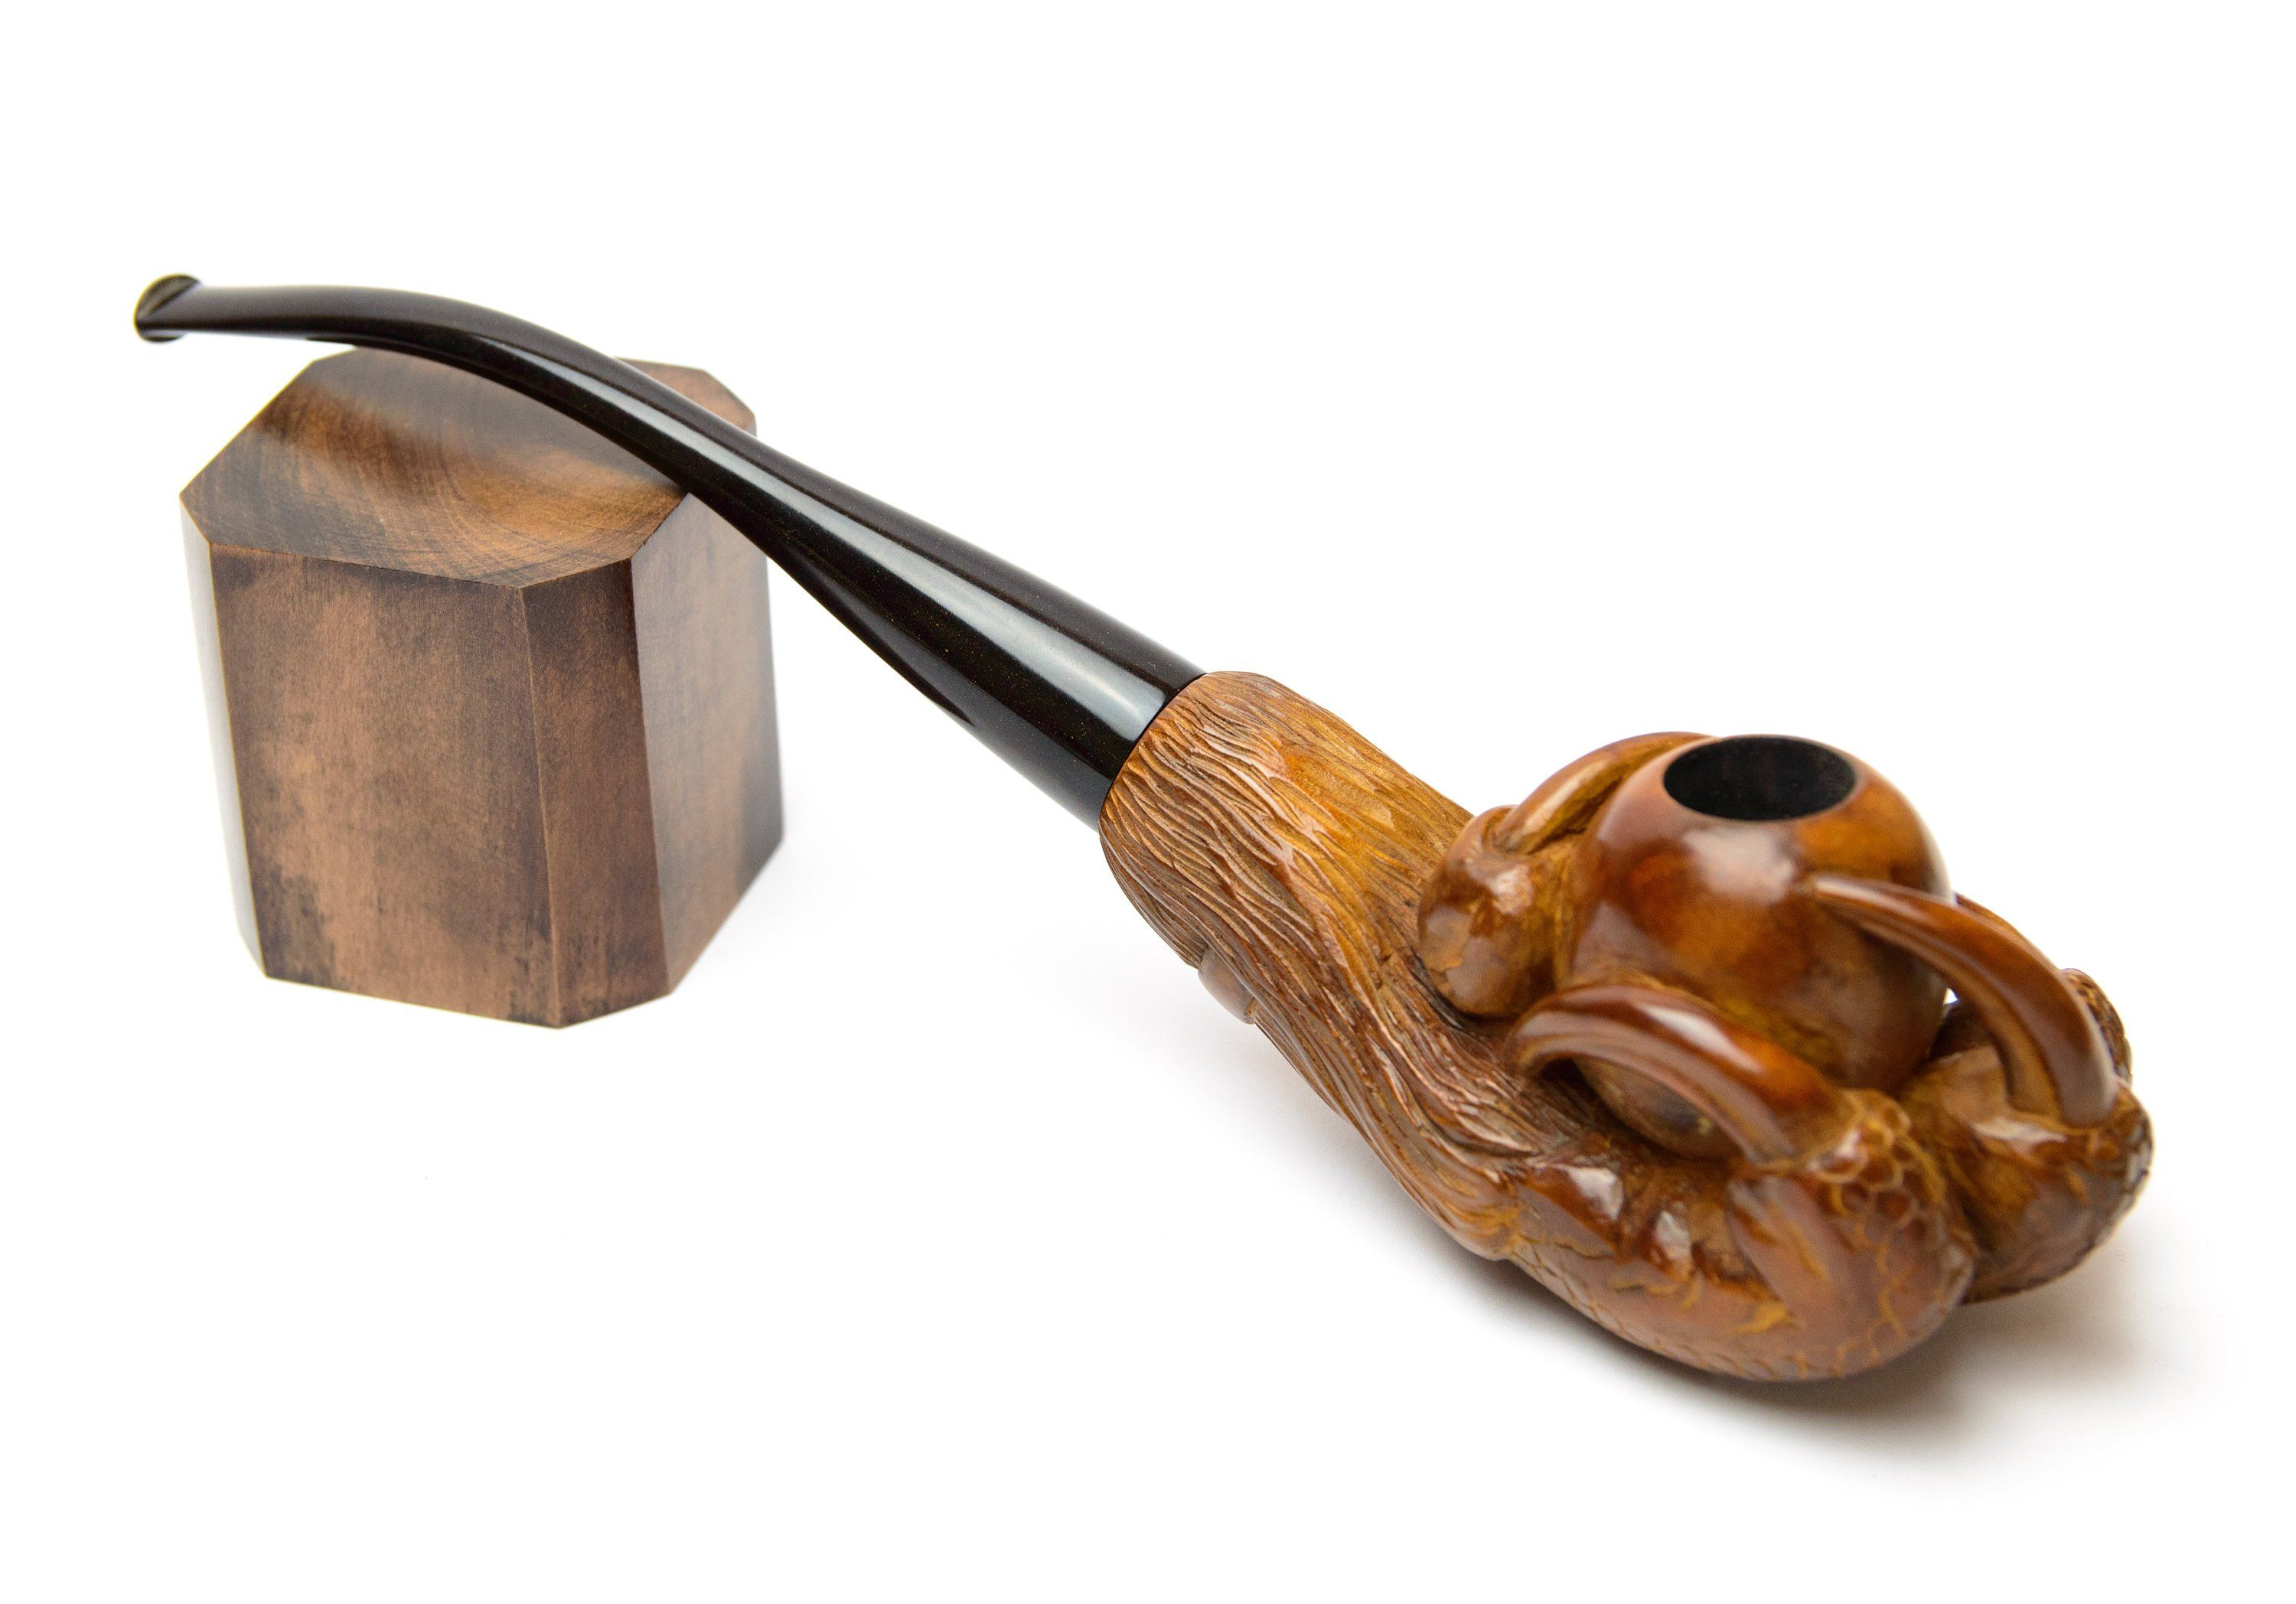 Dragon claw Smoking pipe - Wooden tobacco pipe - Hand carved